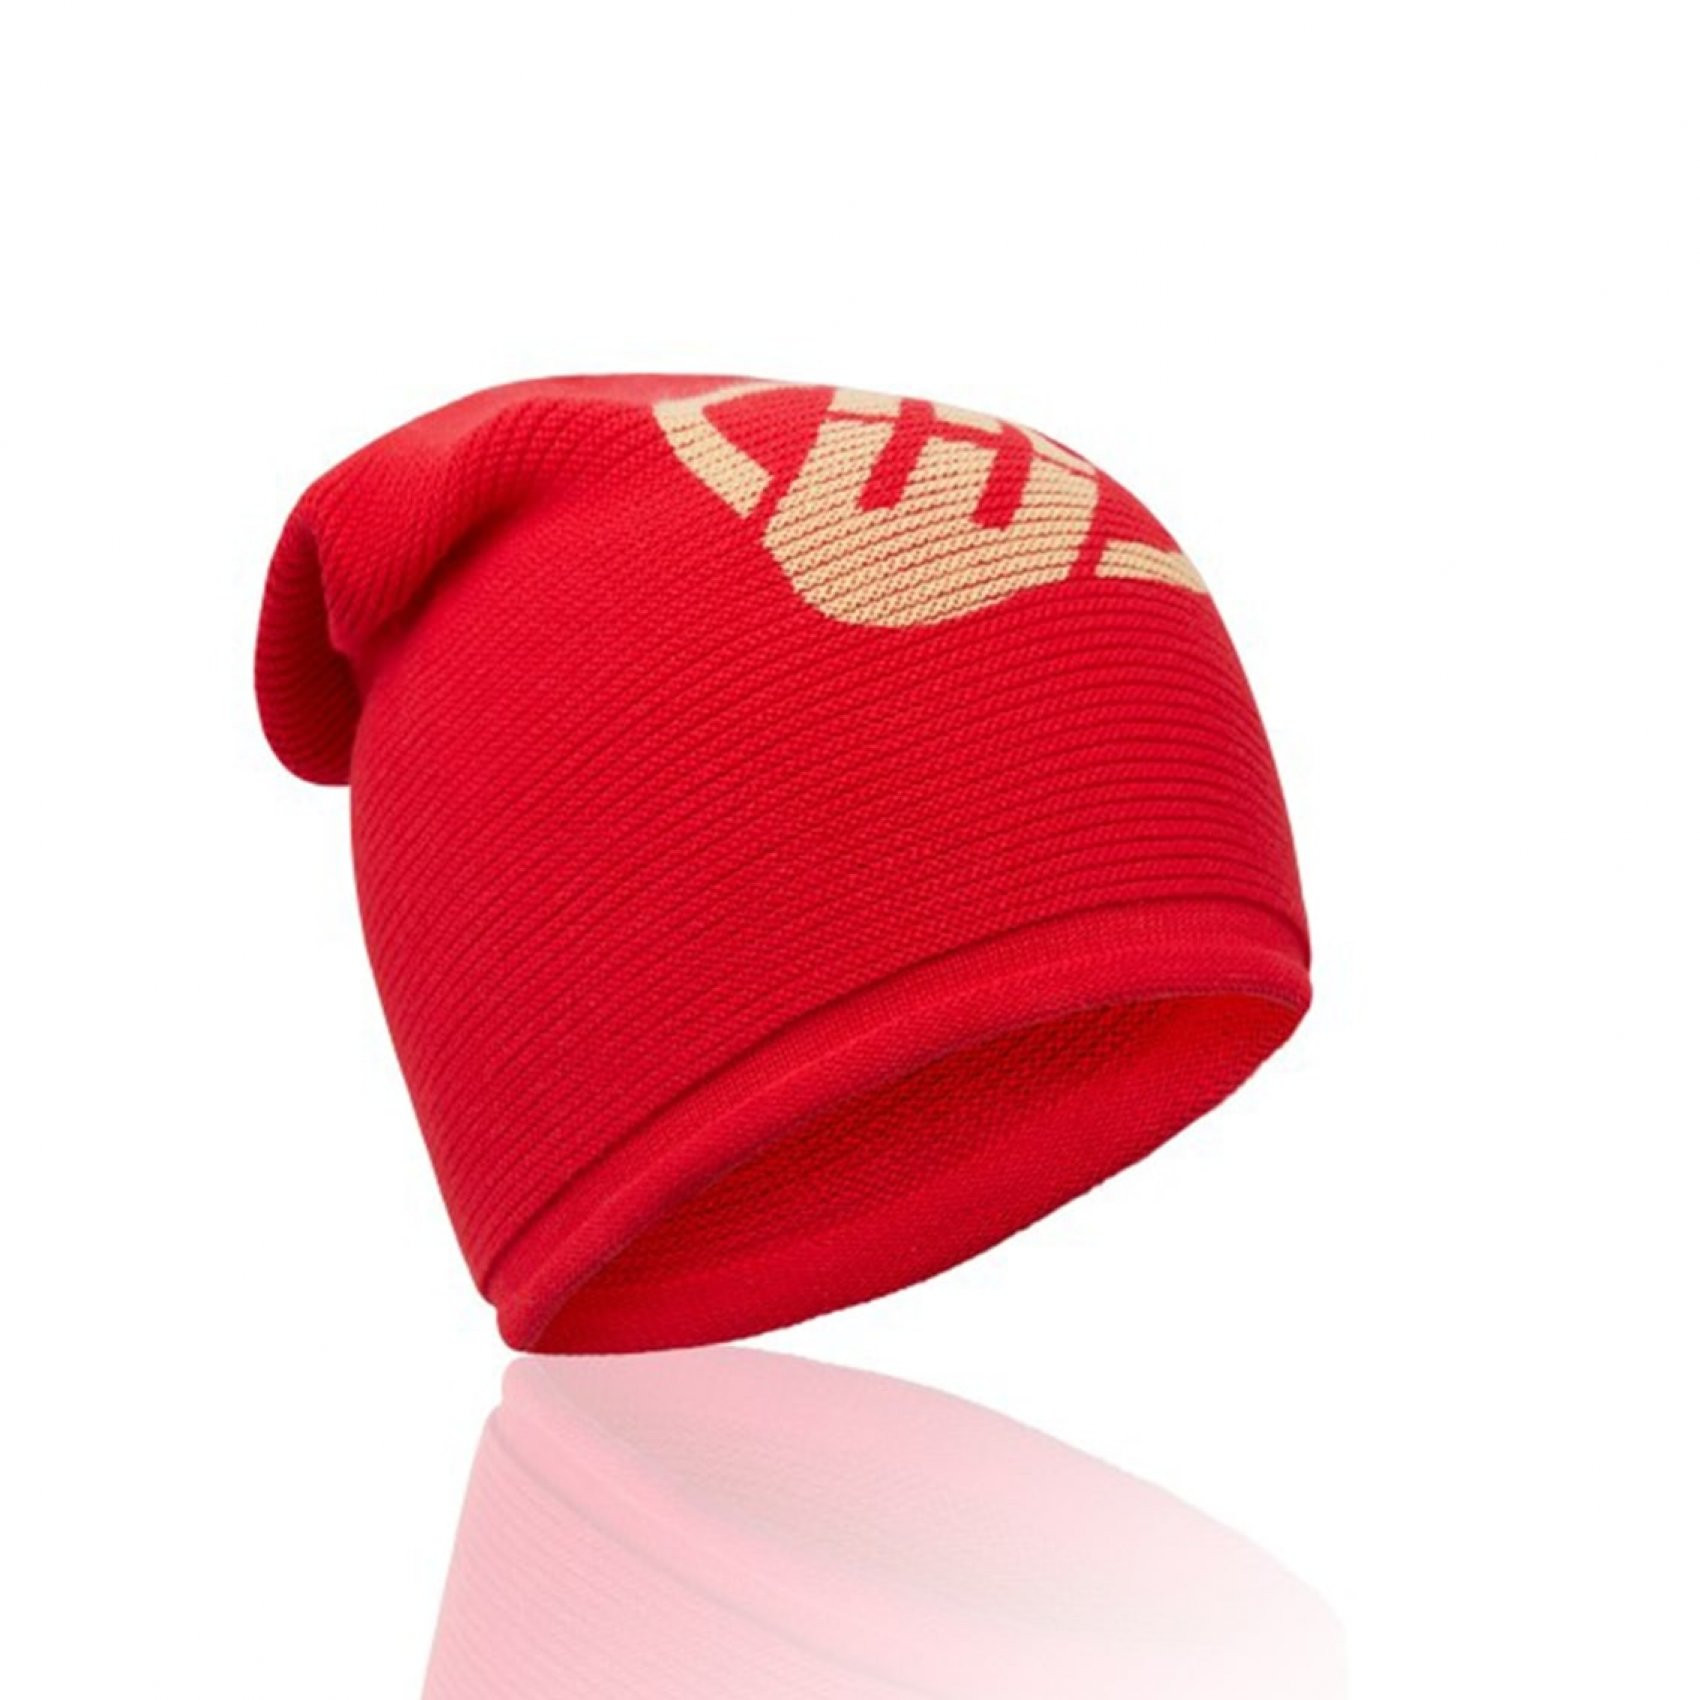 Bonnet homme logo rouge freegun (photo)